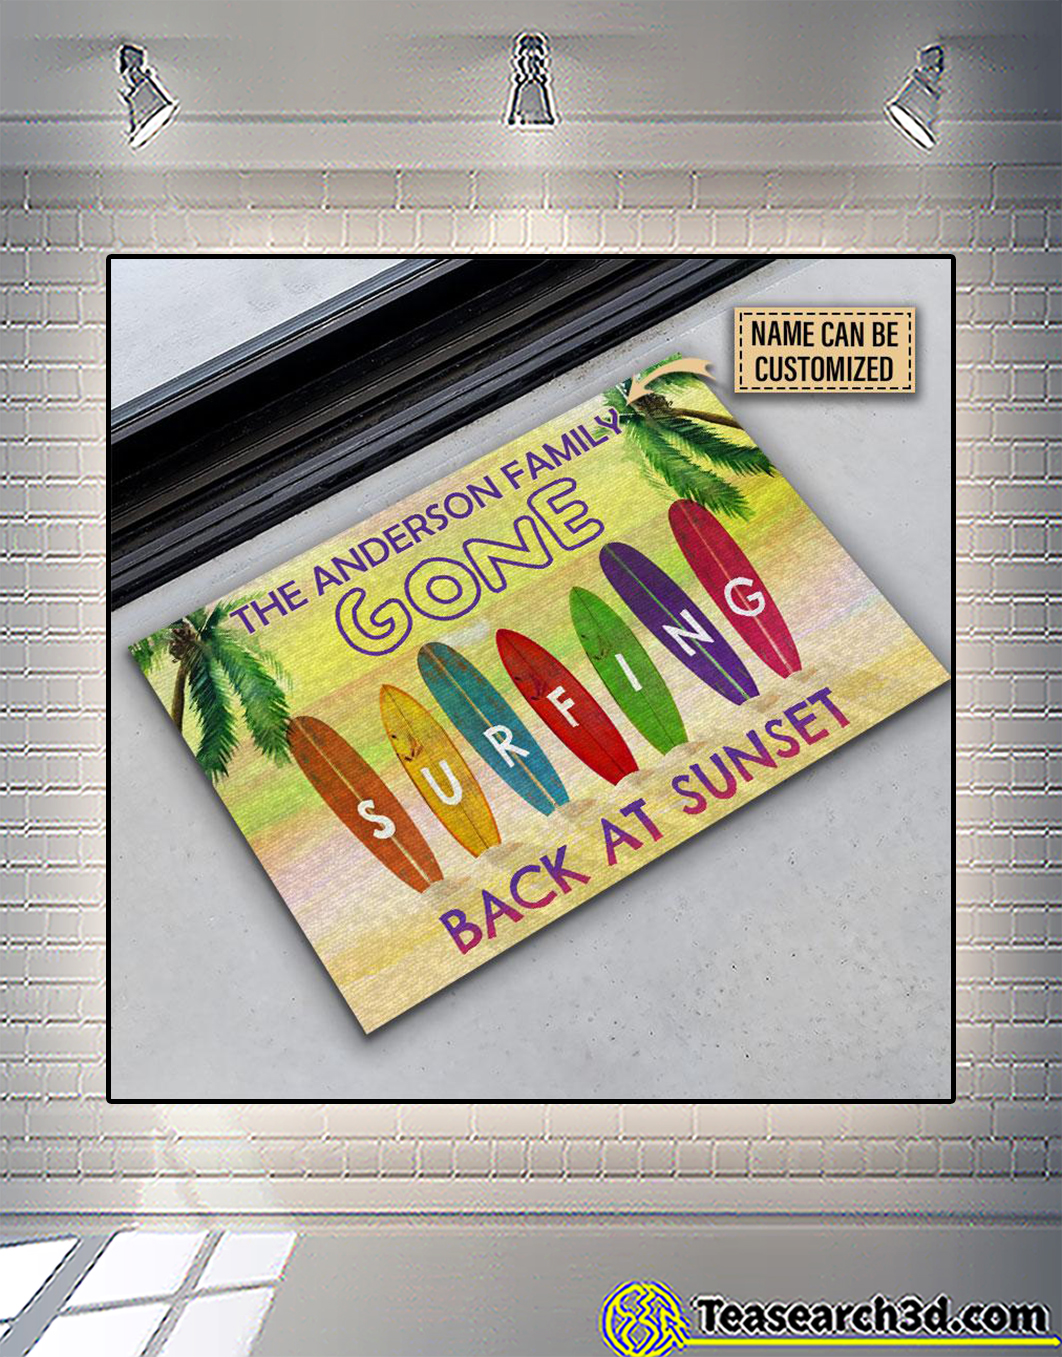 Personalized surfing back at sunset customized doormat 1